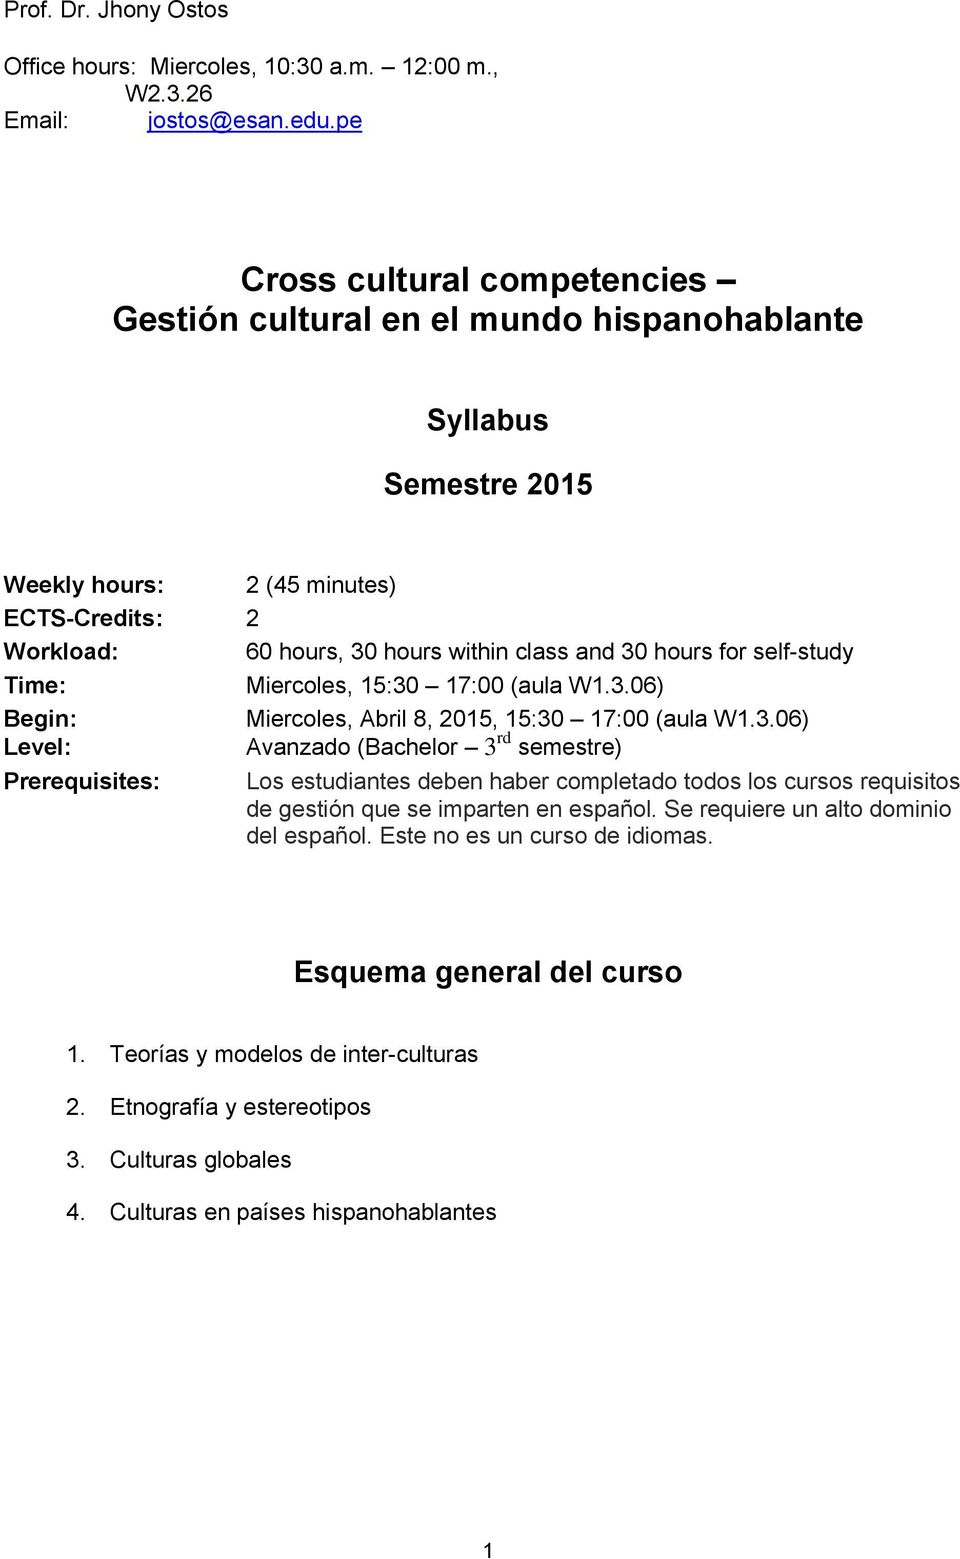 for self-study Time: Miercoles, 15:30